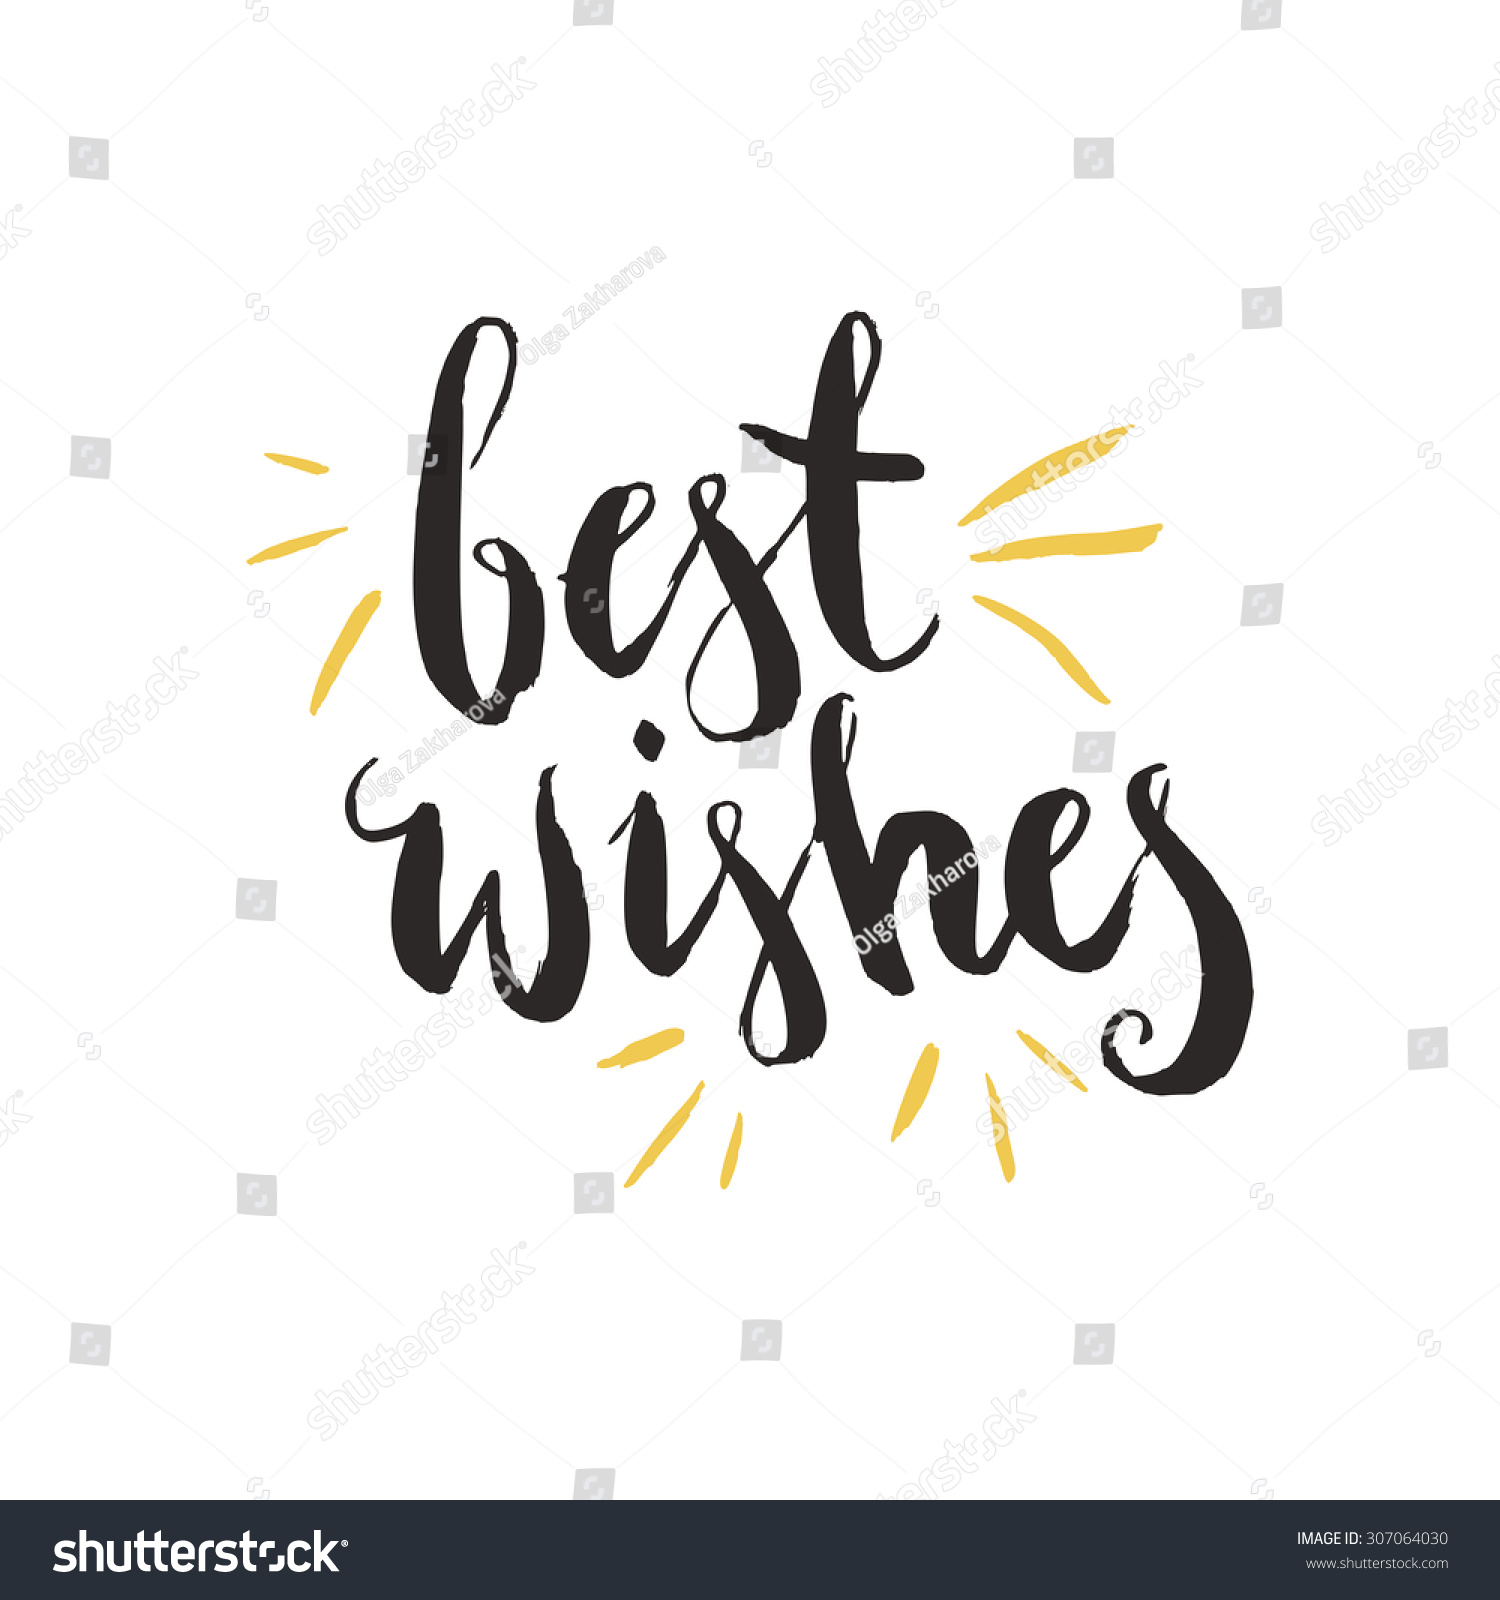 Best Wishes Hand Drawn Holiday Christmas Stock Vector (Royalty Free ...